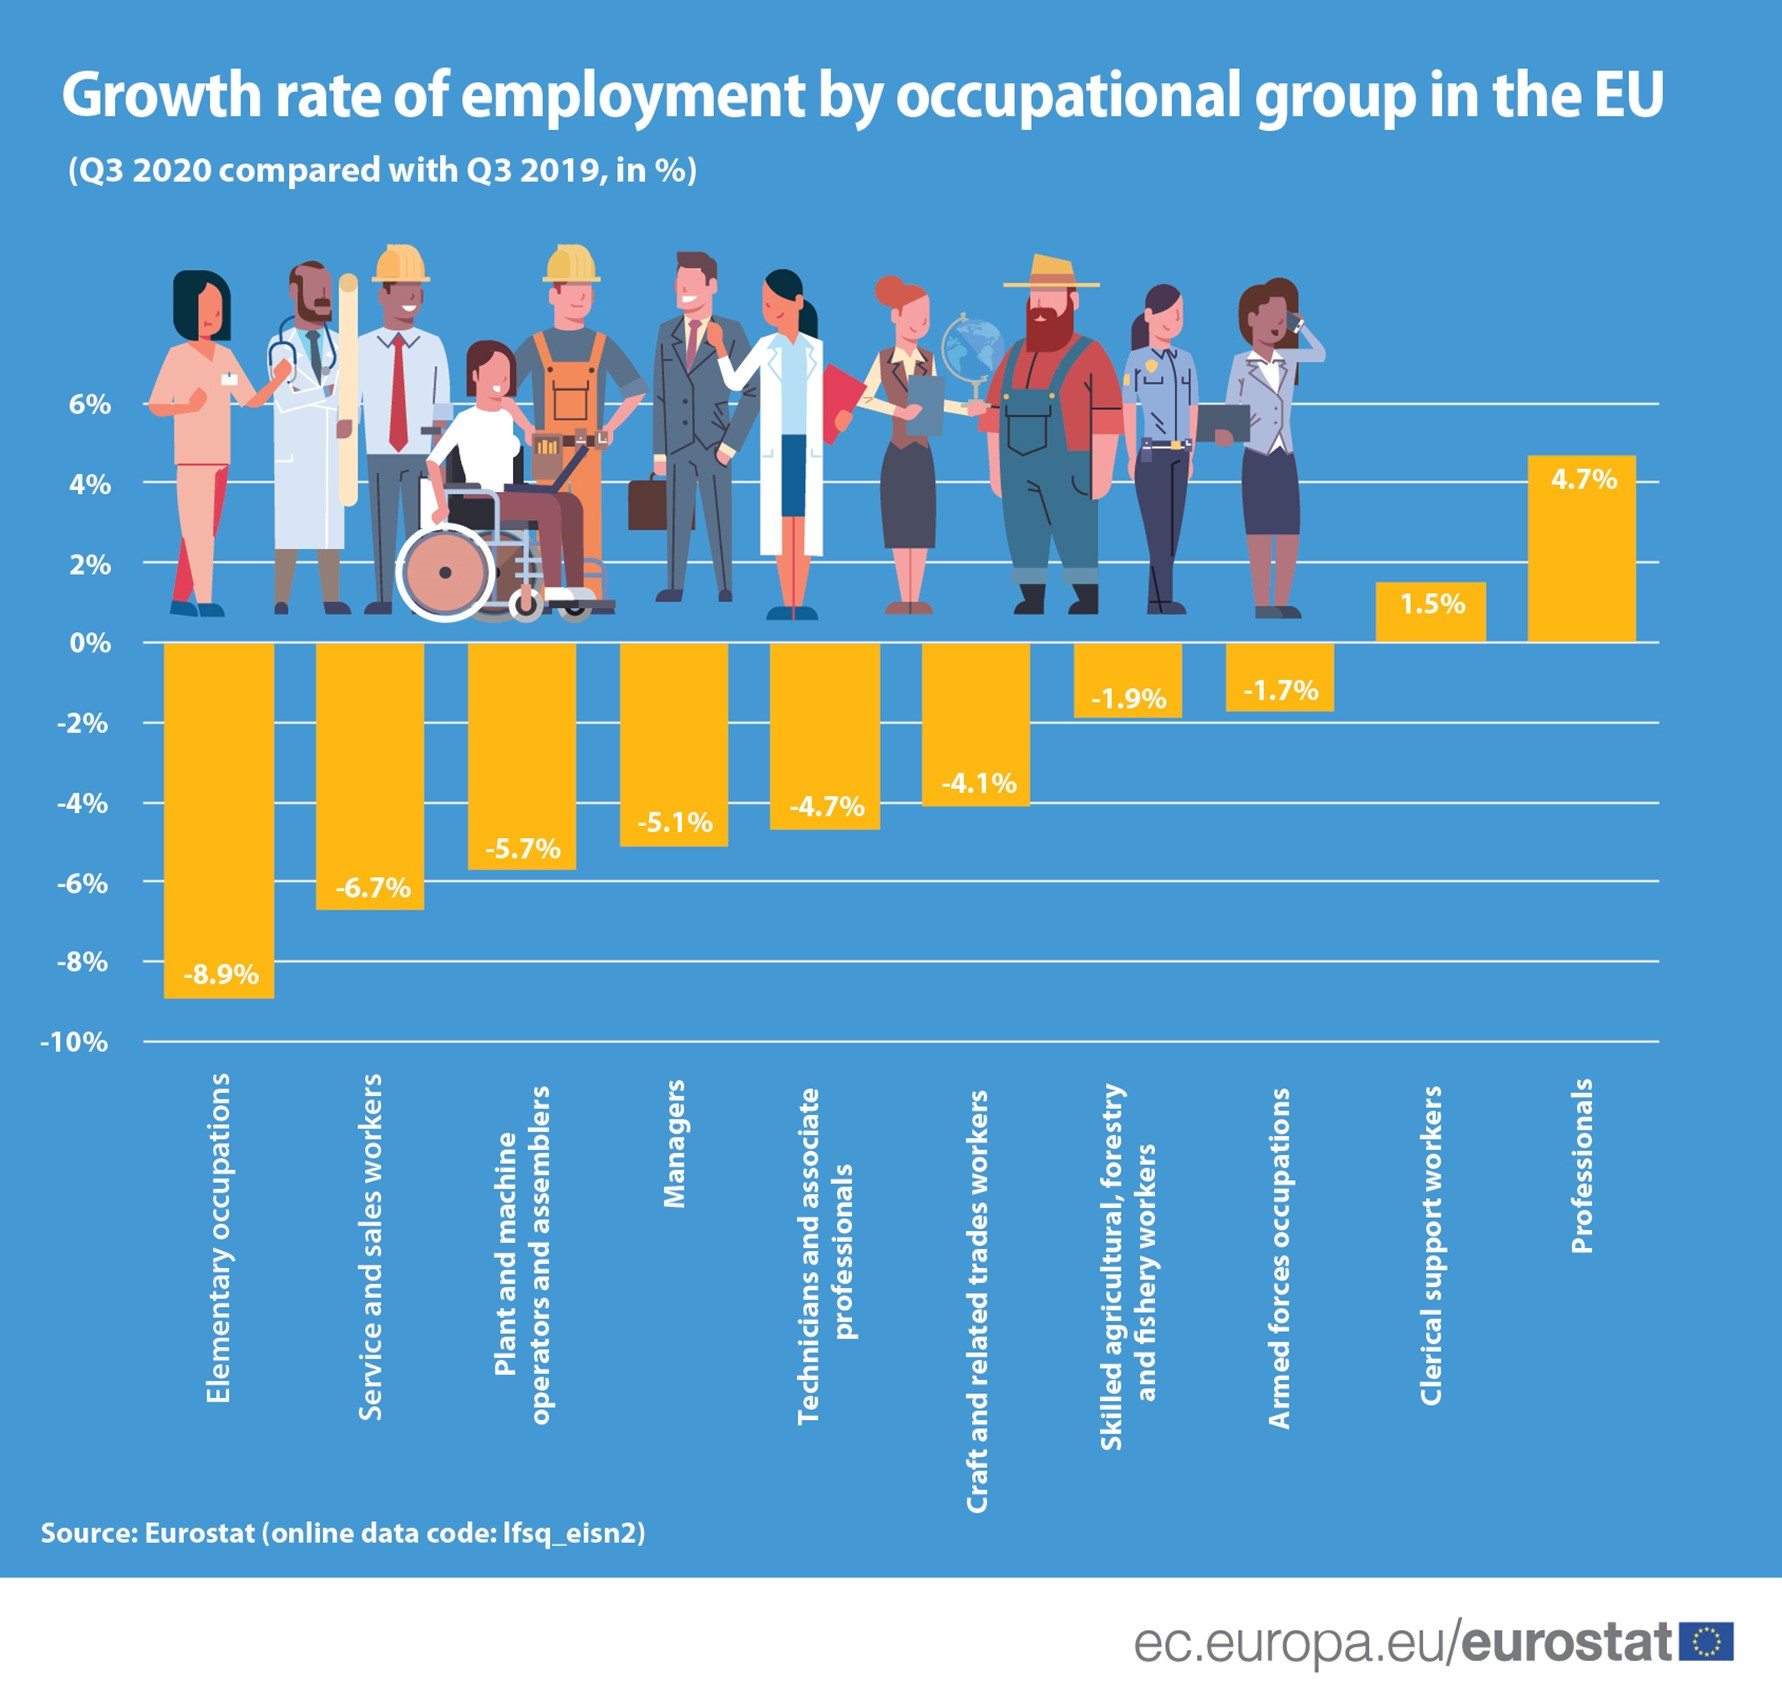 Growth rate of employment by occupational group in the EU